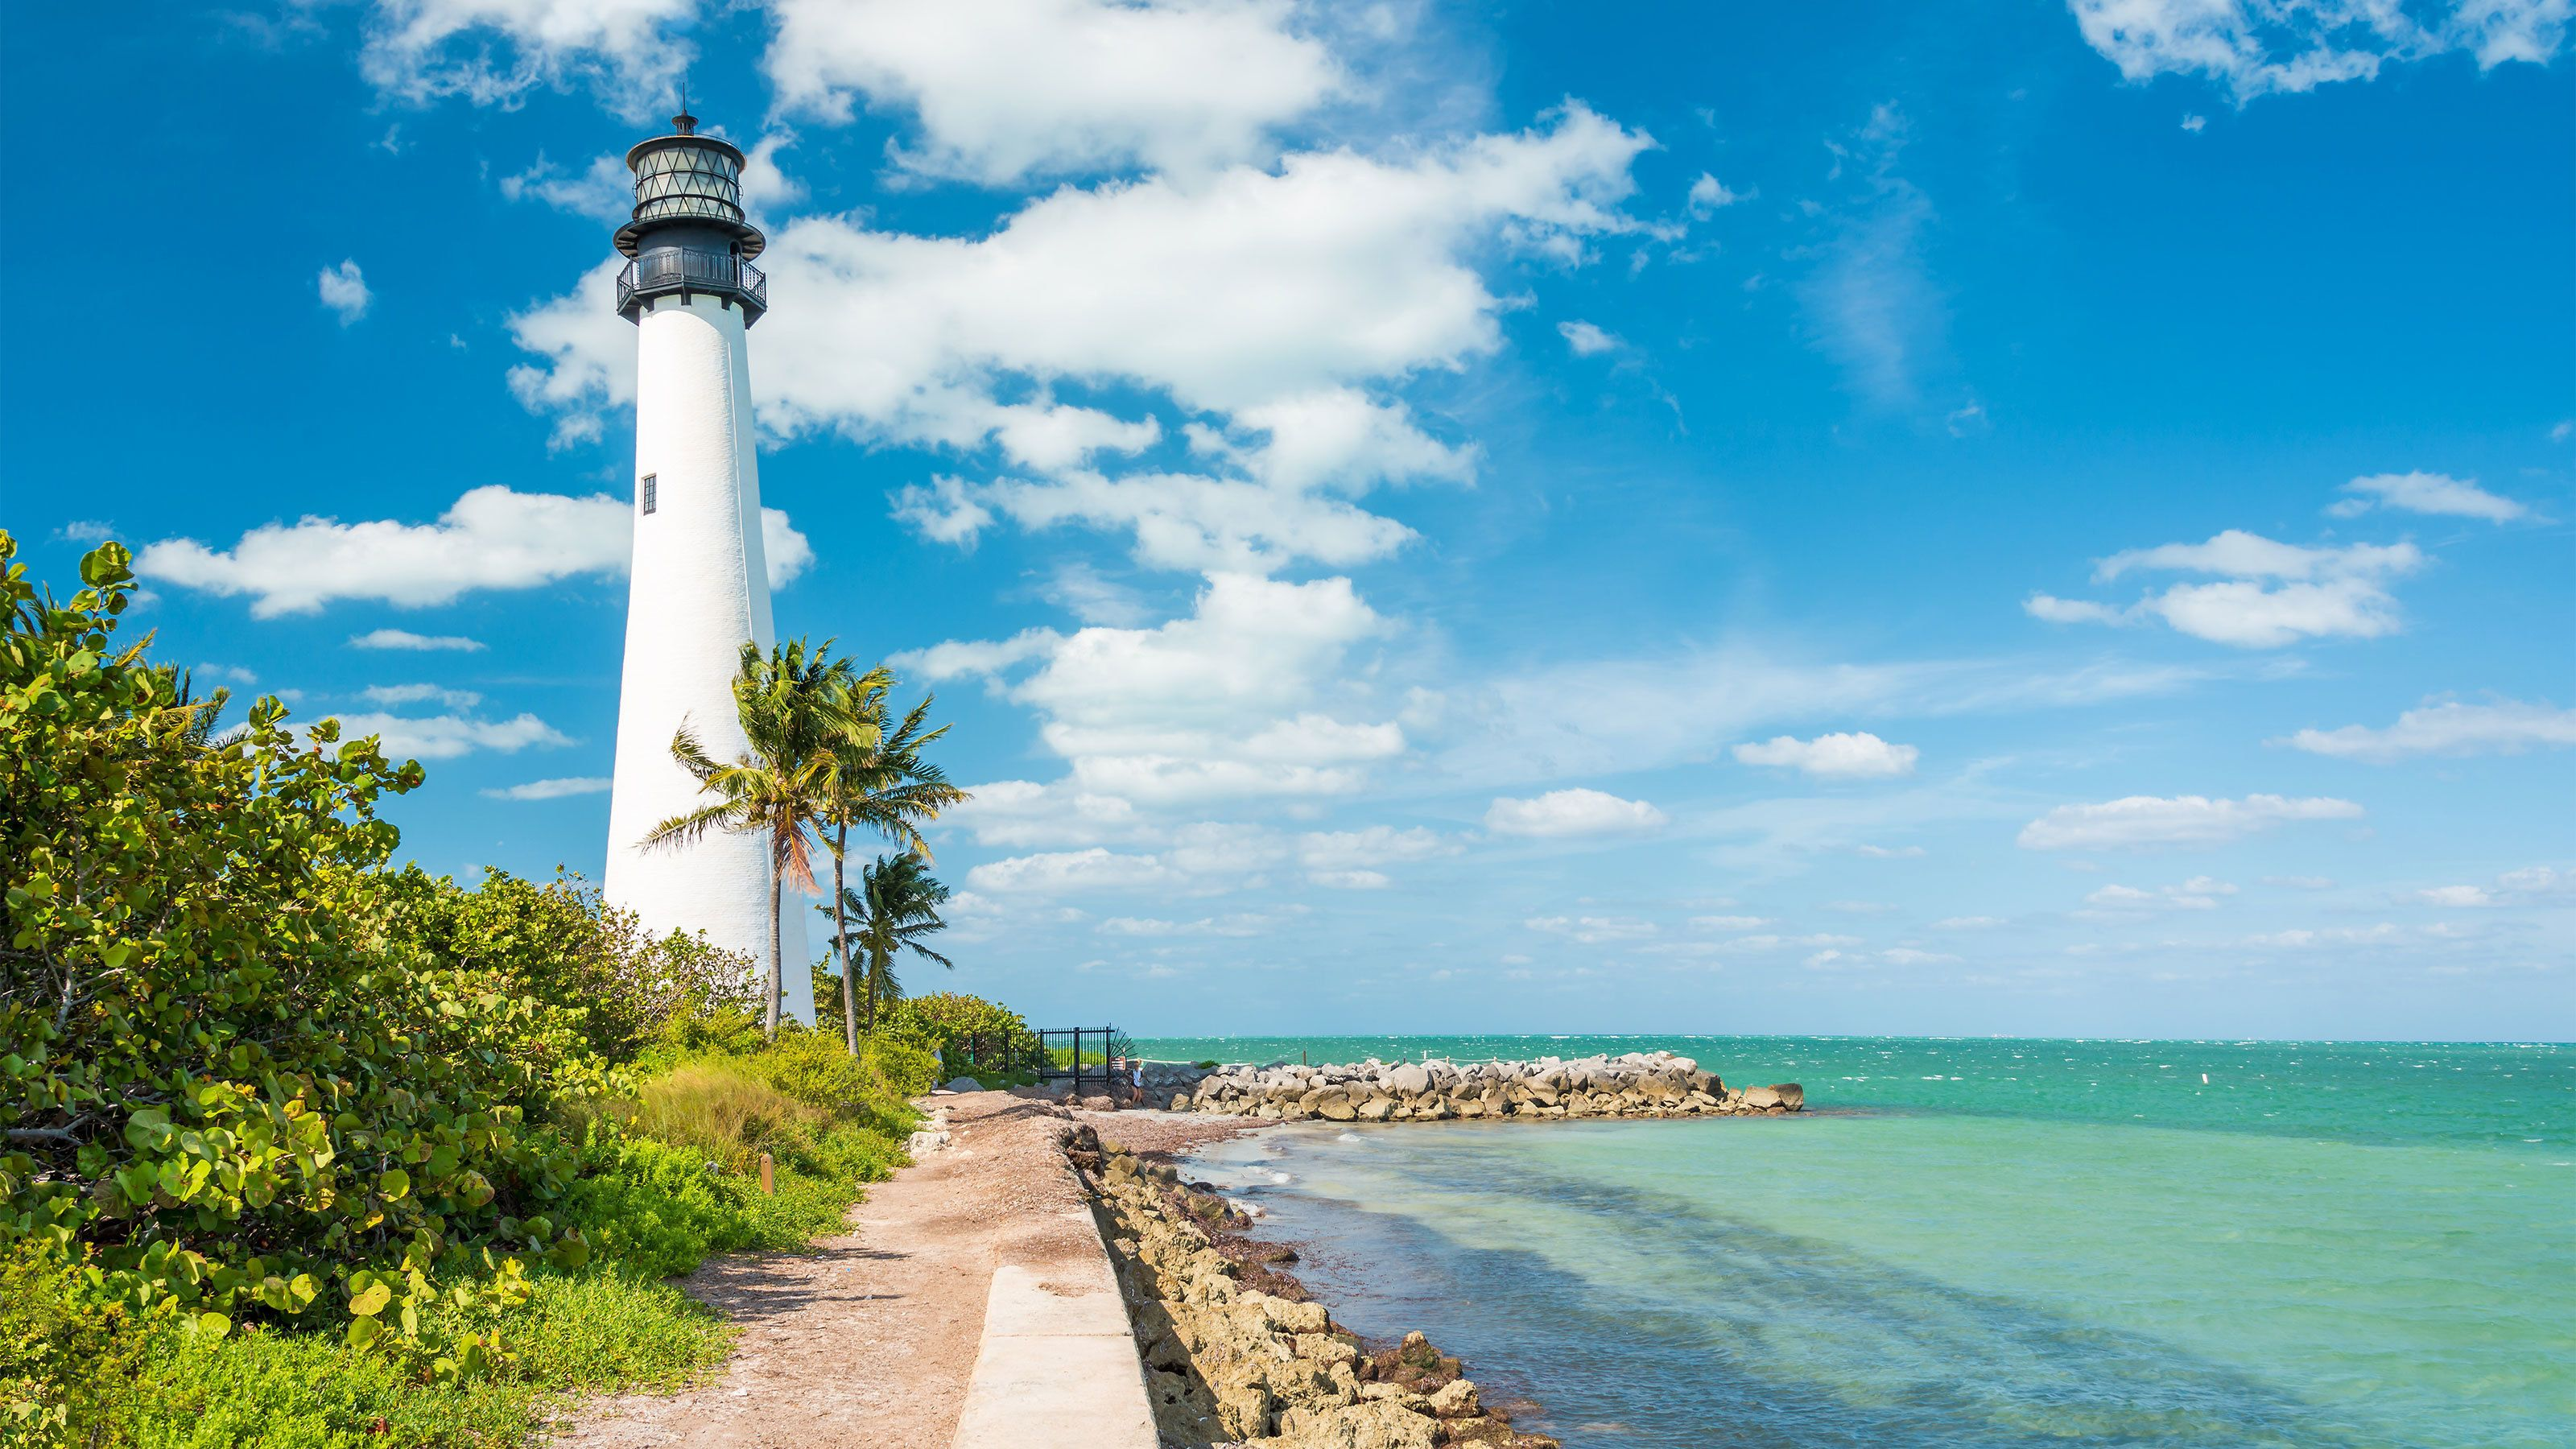 Lighthouse at the Miami beach in Florida